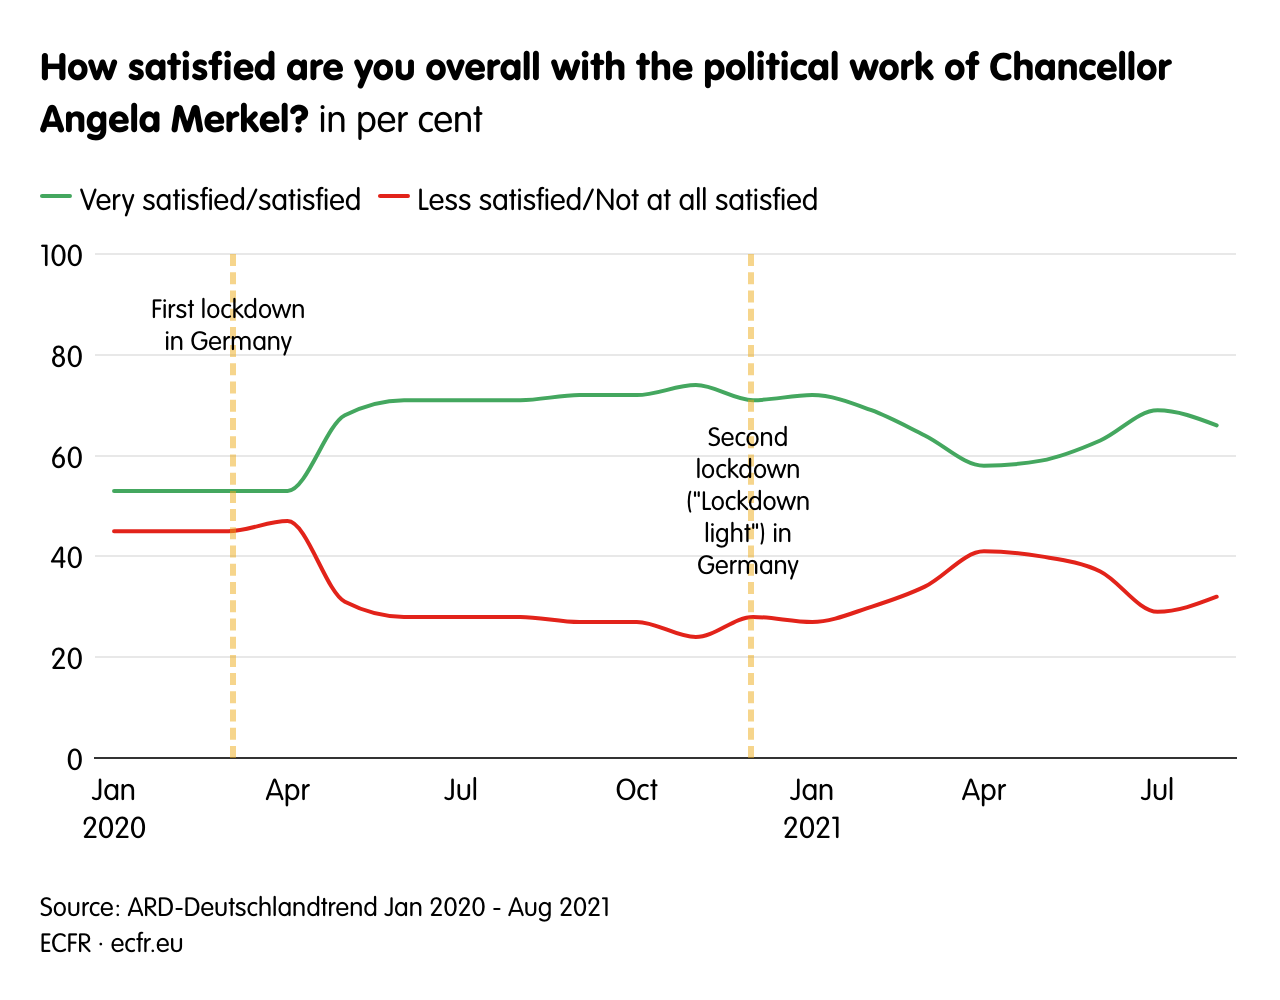 How satisfied are you overall with the political work of Chancellor Angela Merkel?